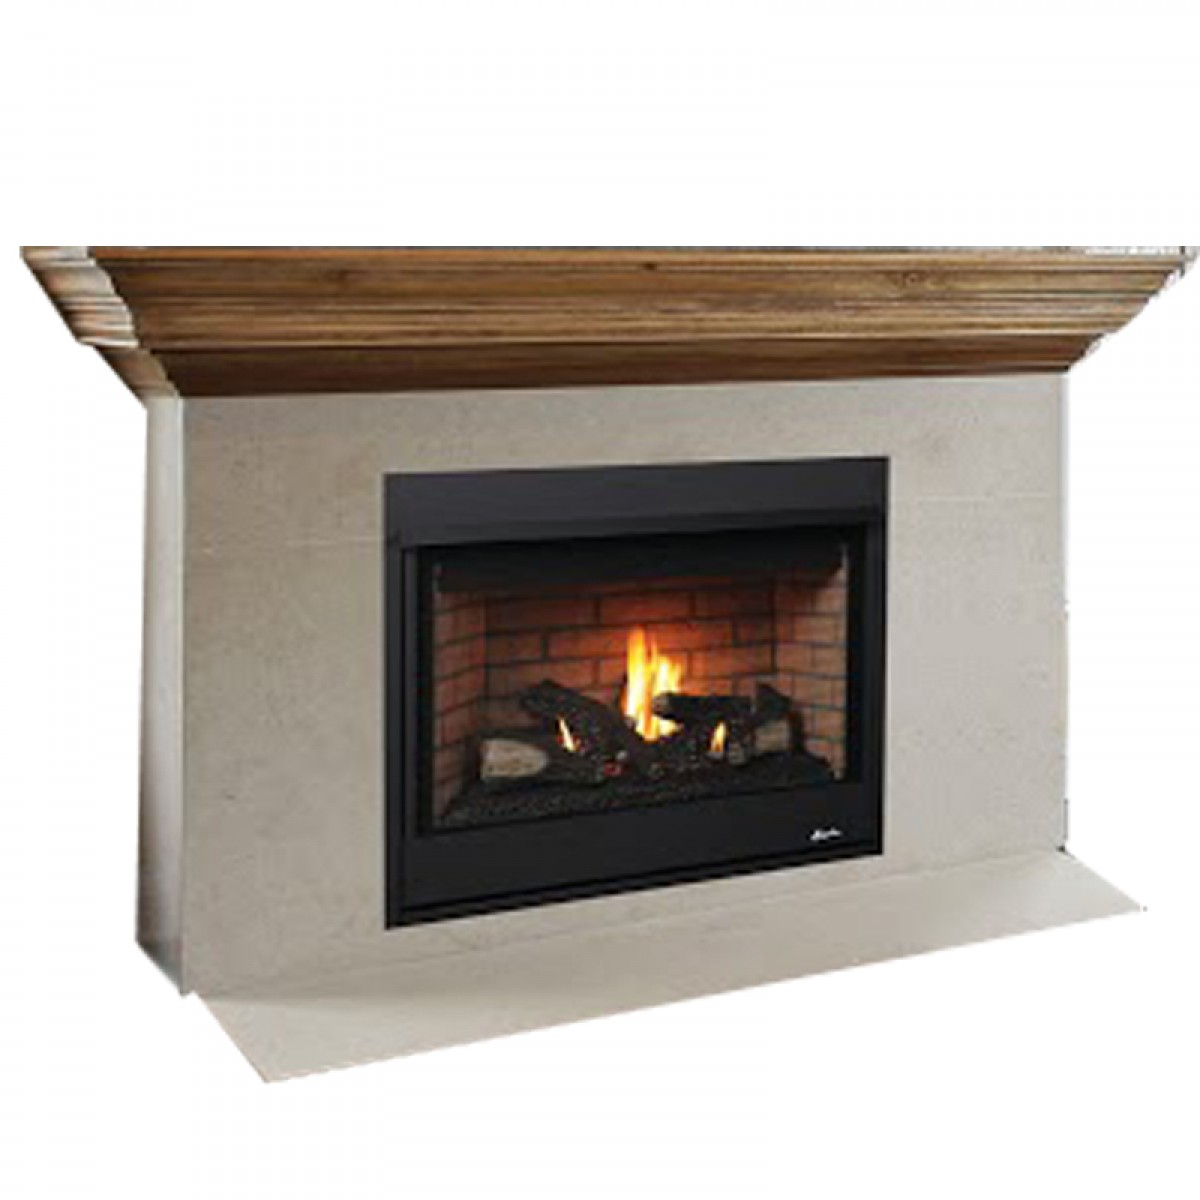 to fireplaces posted may gas at vent in questions direct important a ask fireplace purchasing before